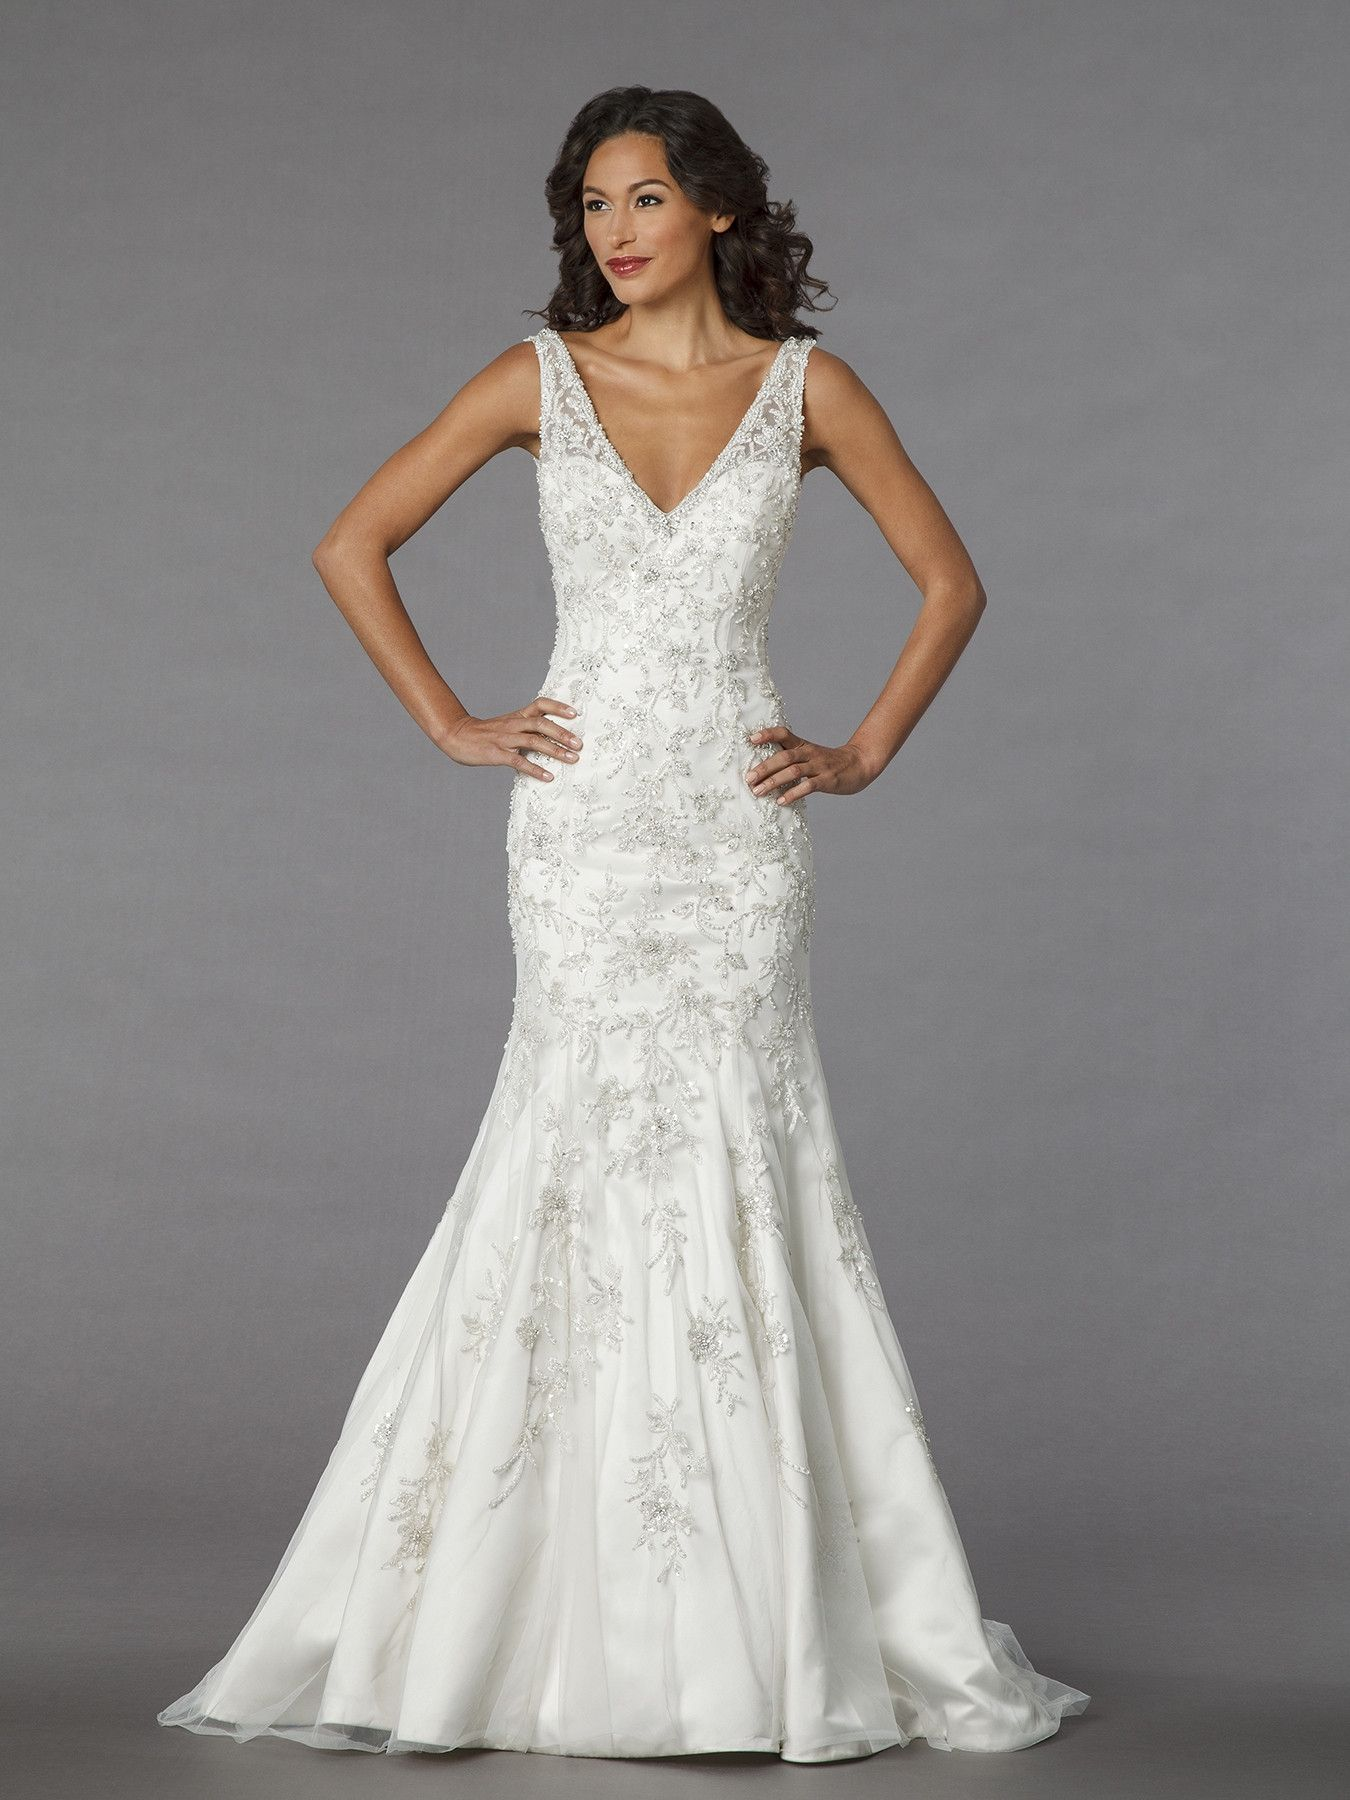 Wedding dress out of alita graham for kleinfeld style